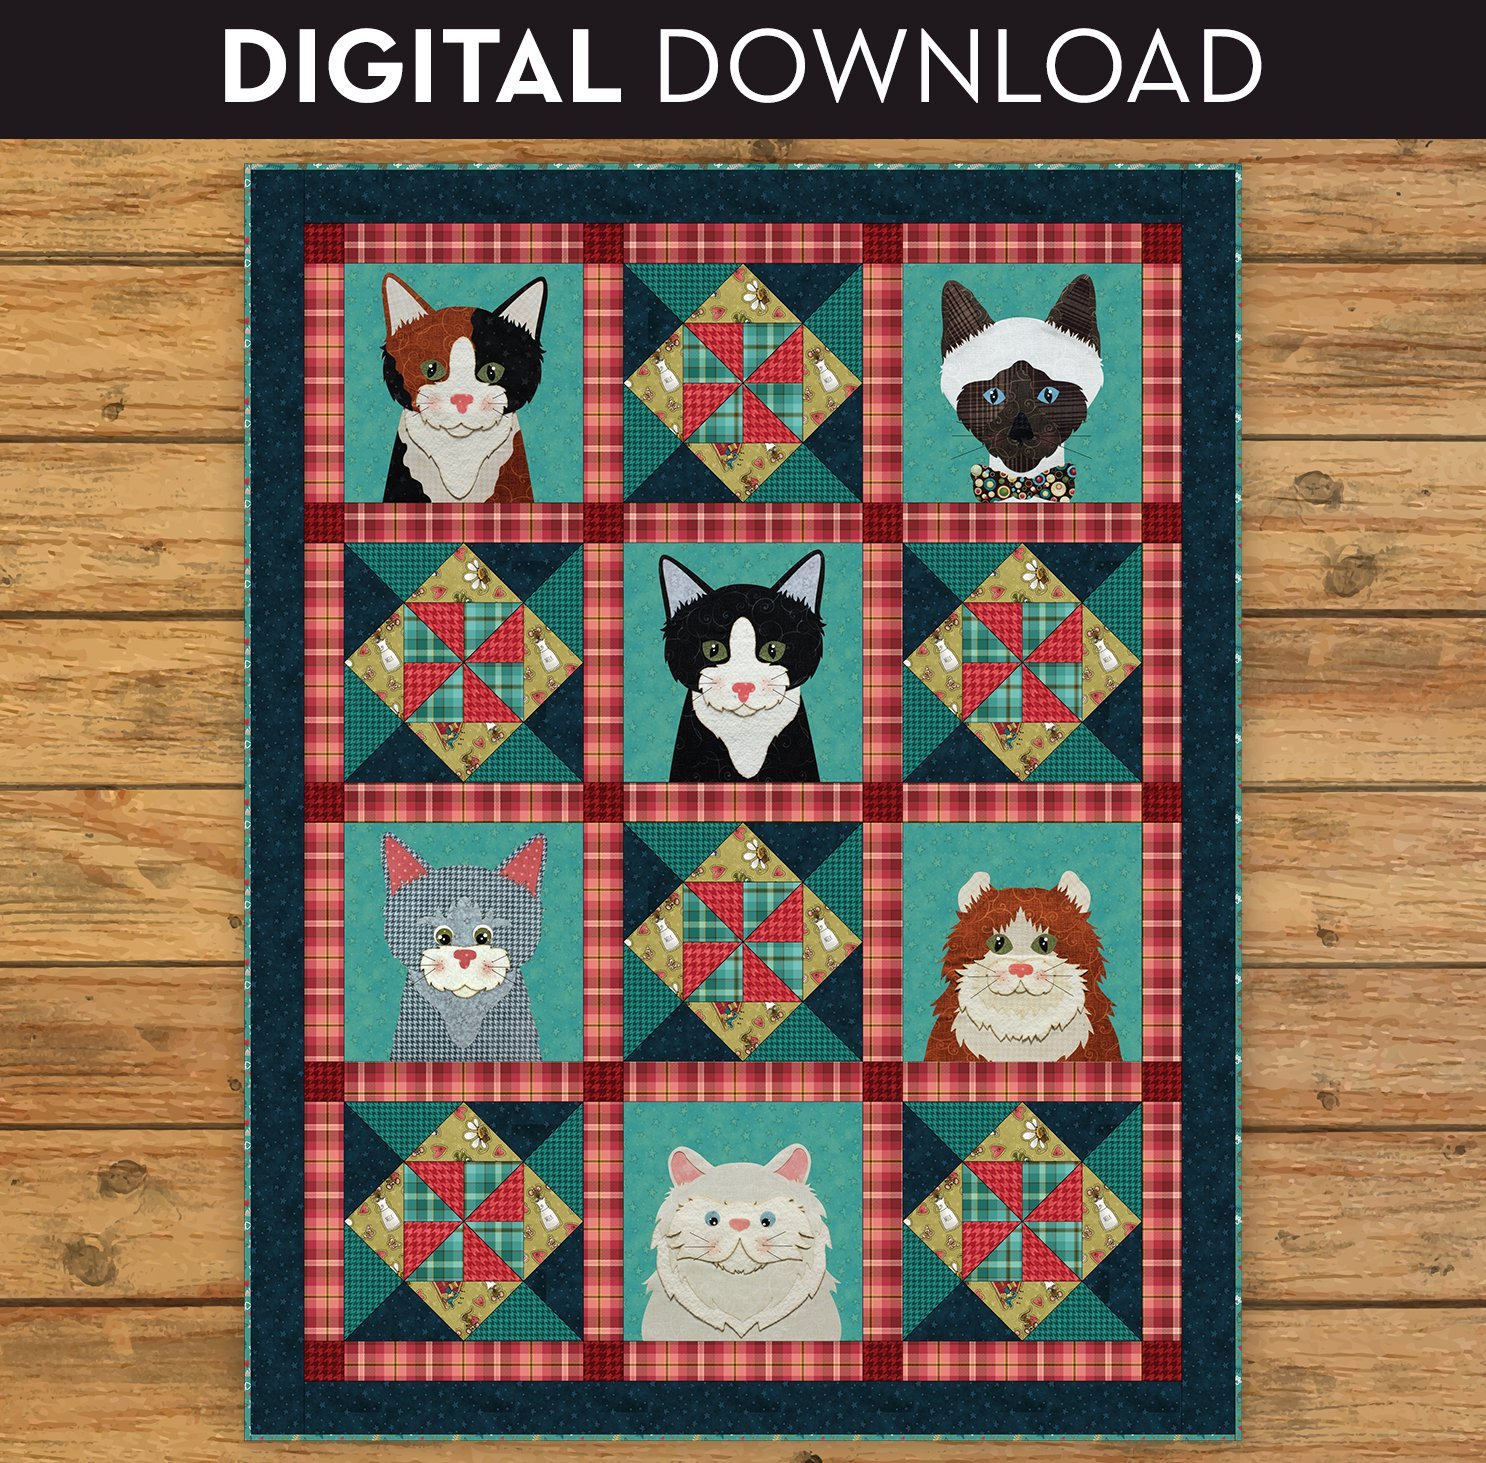 Live Love Meow Applique Quilt - Download